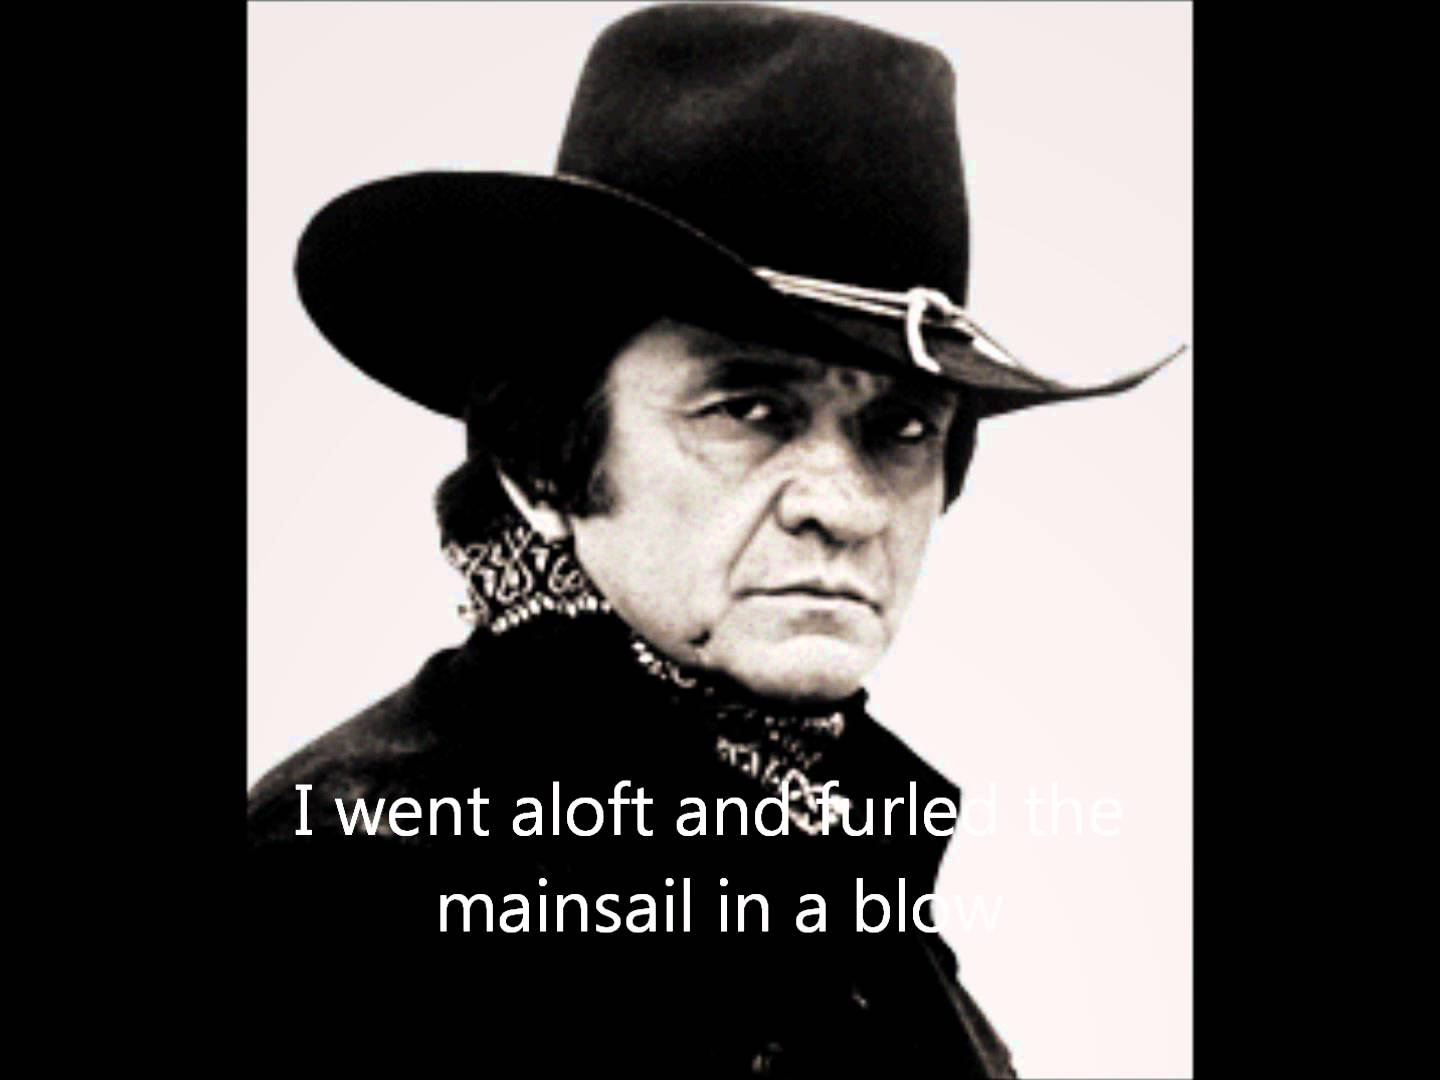 Johnny Cash Highwayman with Willie Nelson, Waylon Jennings & Kris Kristofferson With lyrics